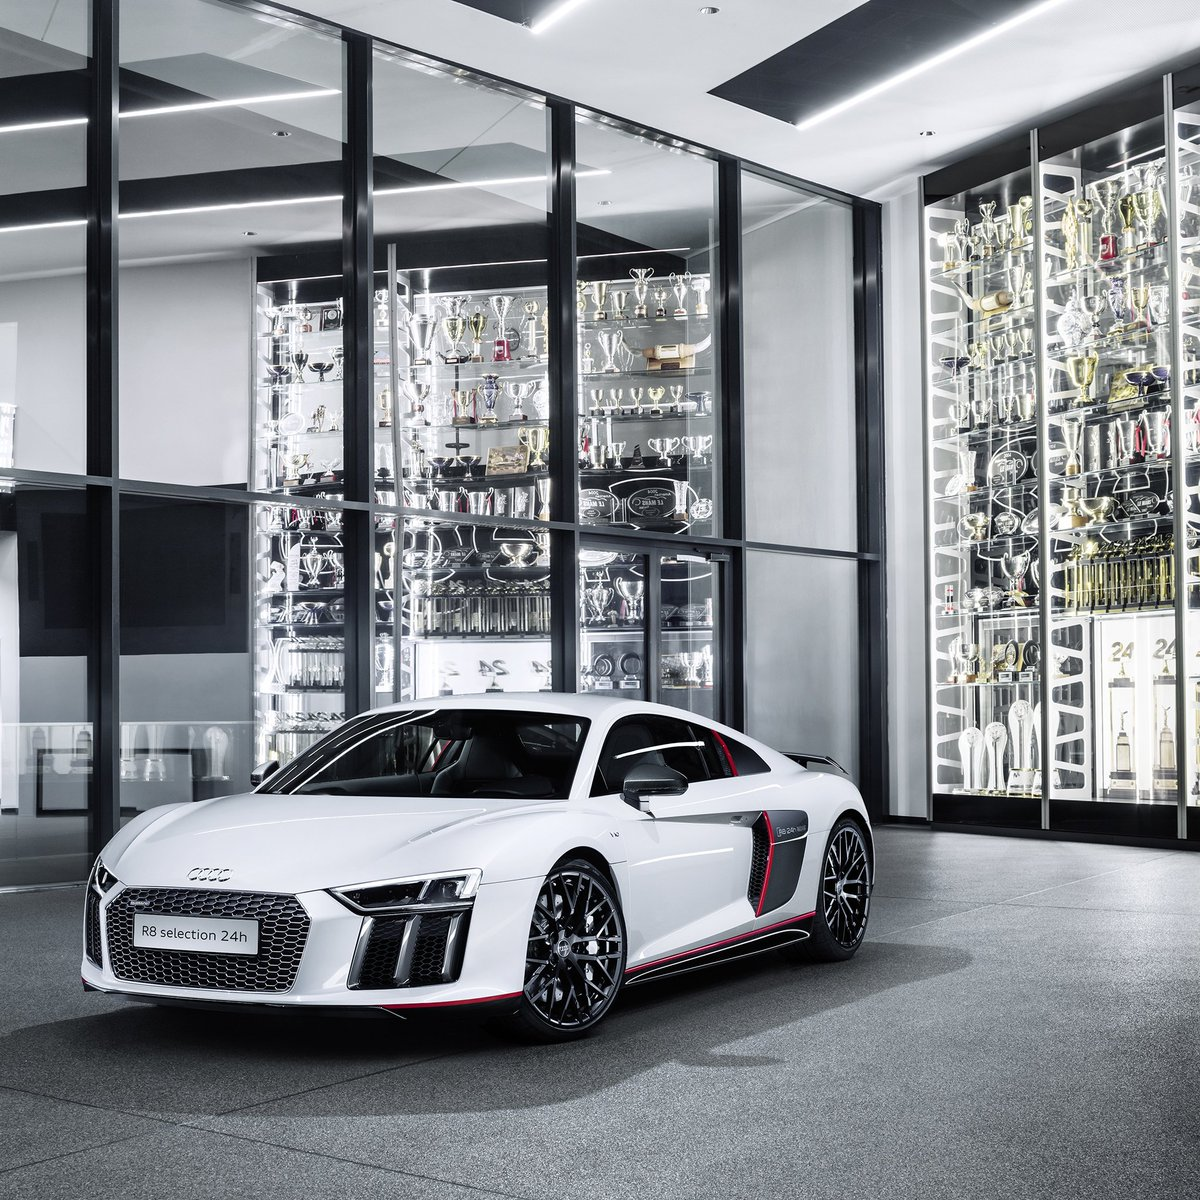 Audi Canada On Twitter We Need More Room In Our Trophy Case - Audi canada